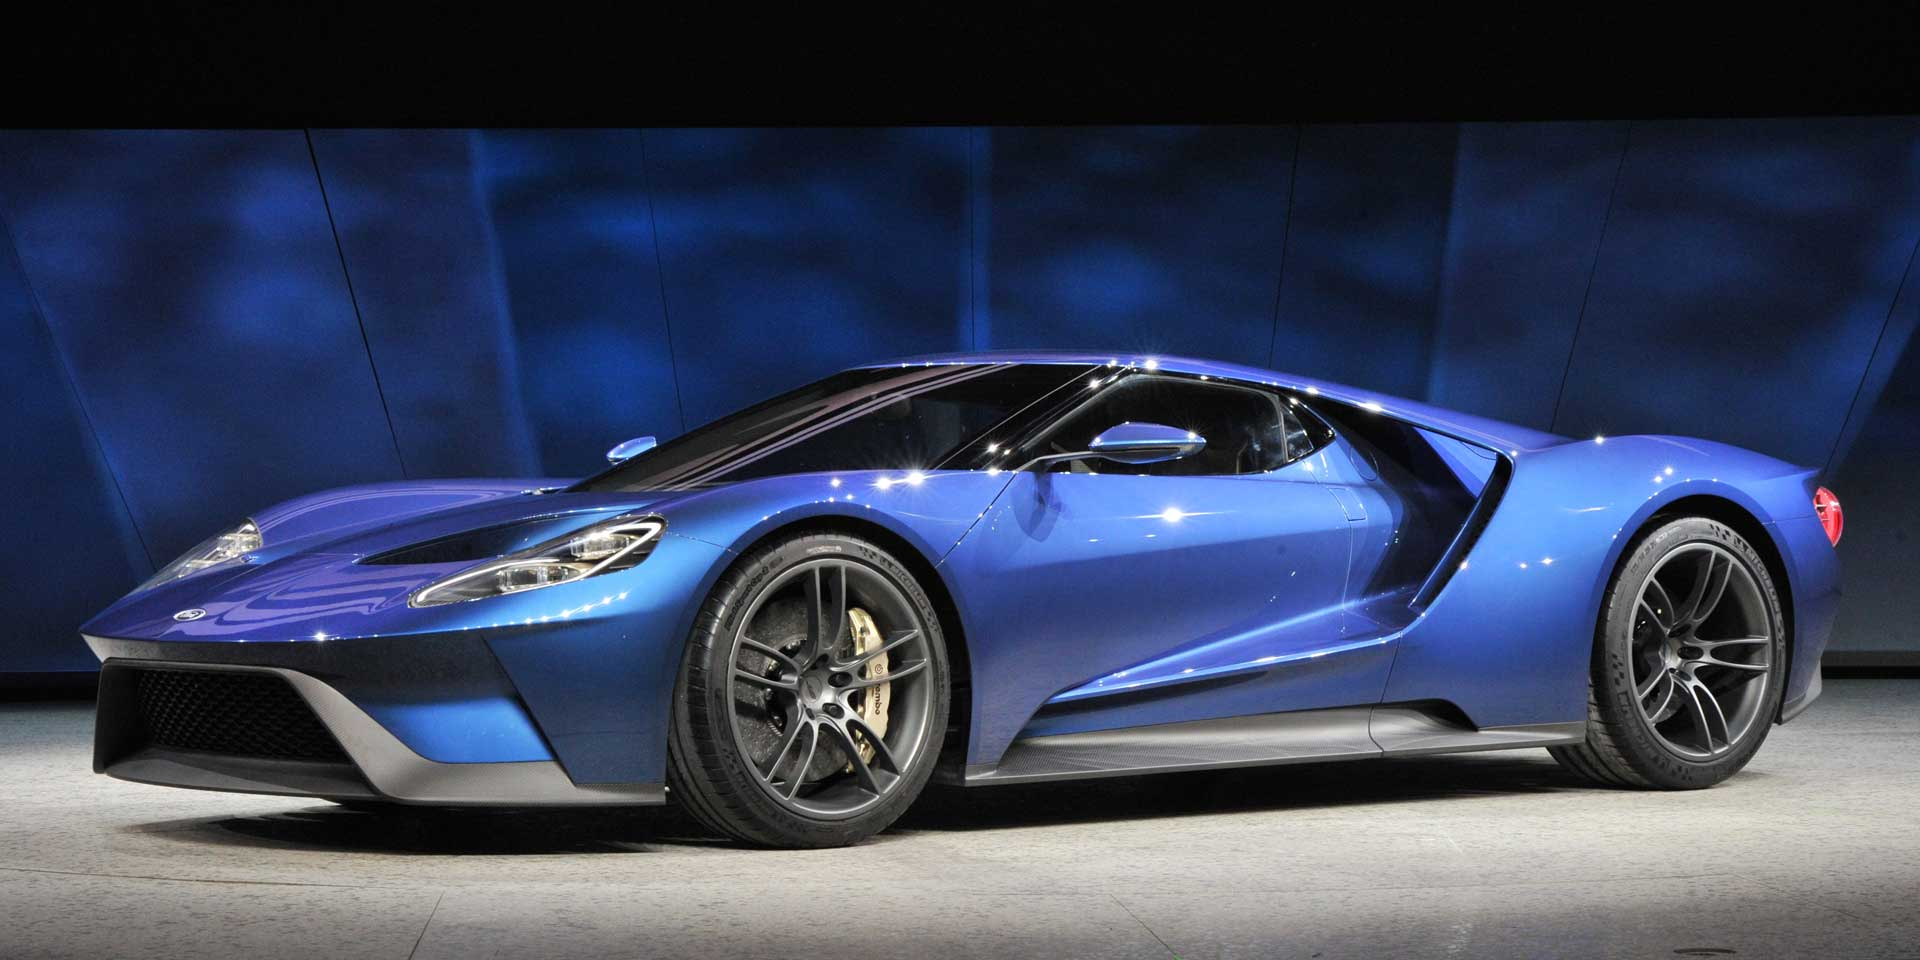 2018 - Ford - GT - Vehicles on Display | Chicago Auto Show